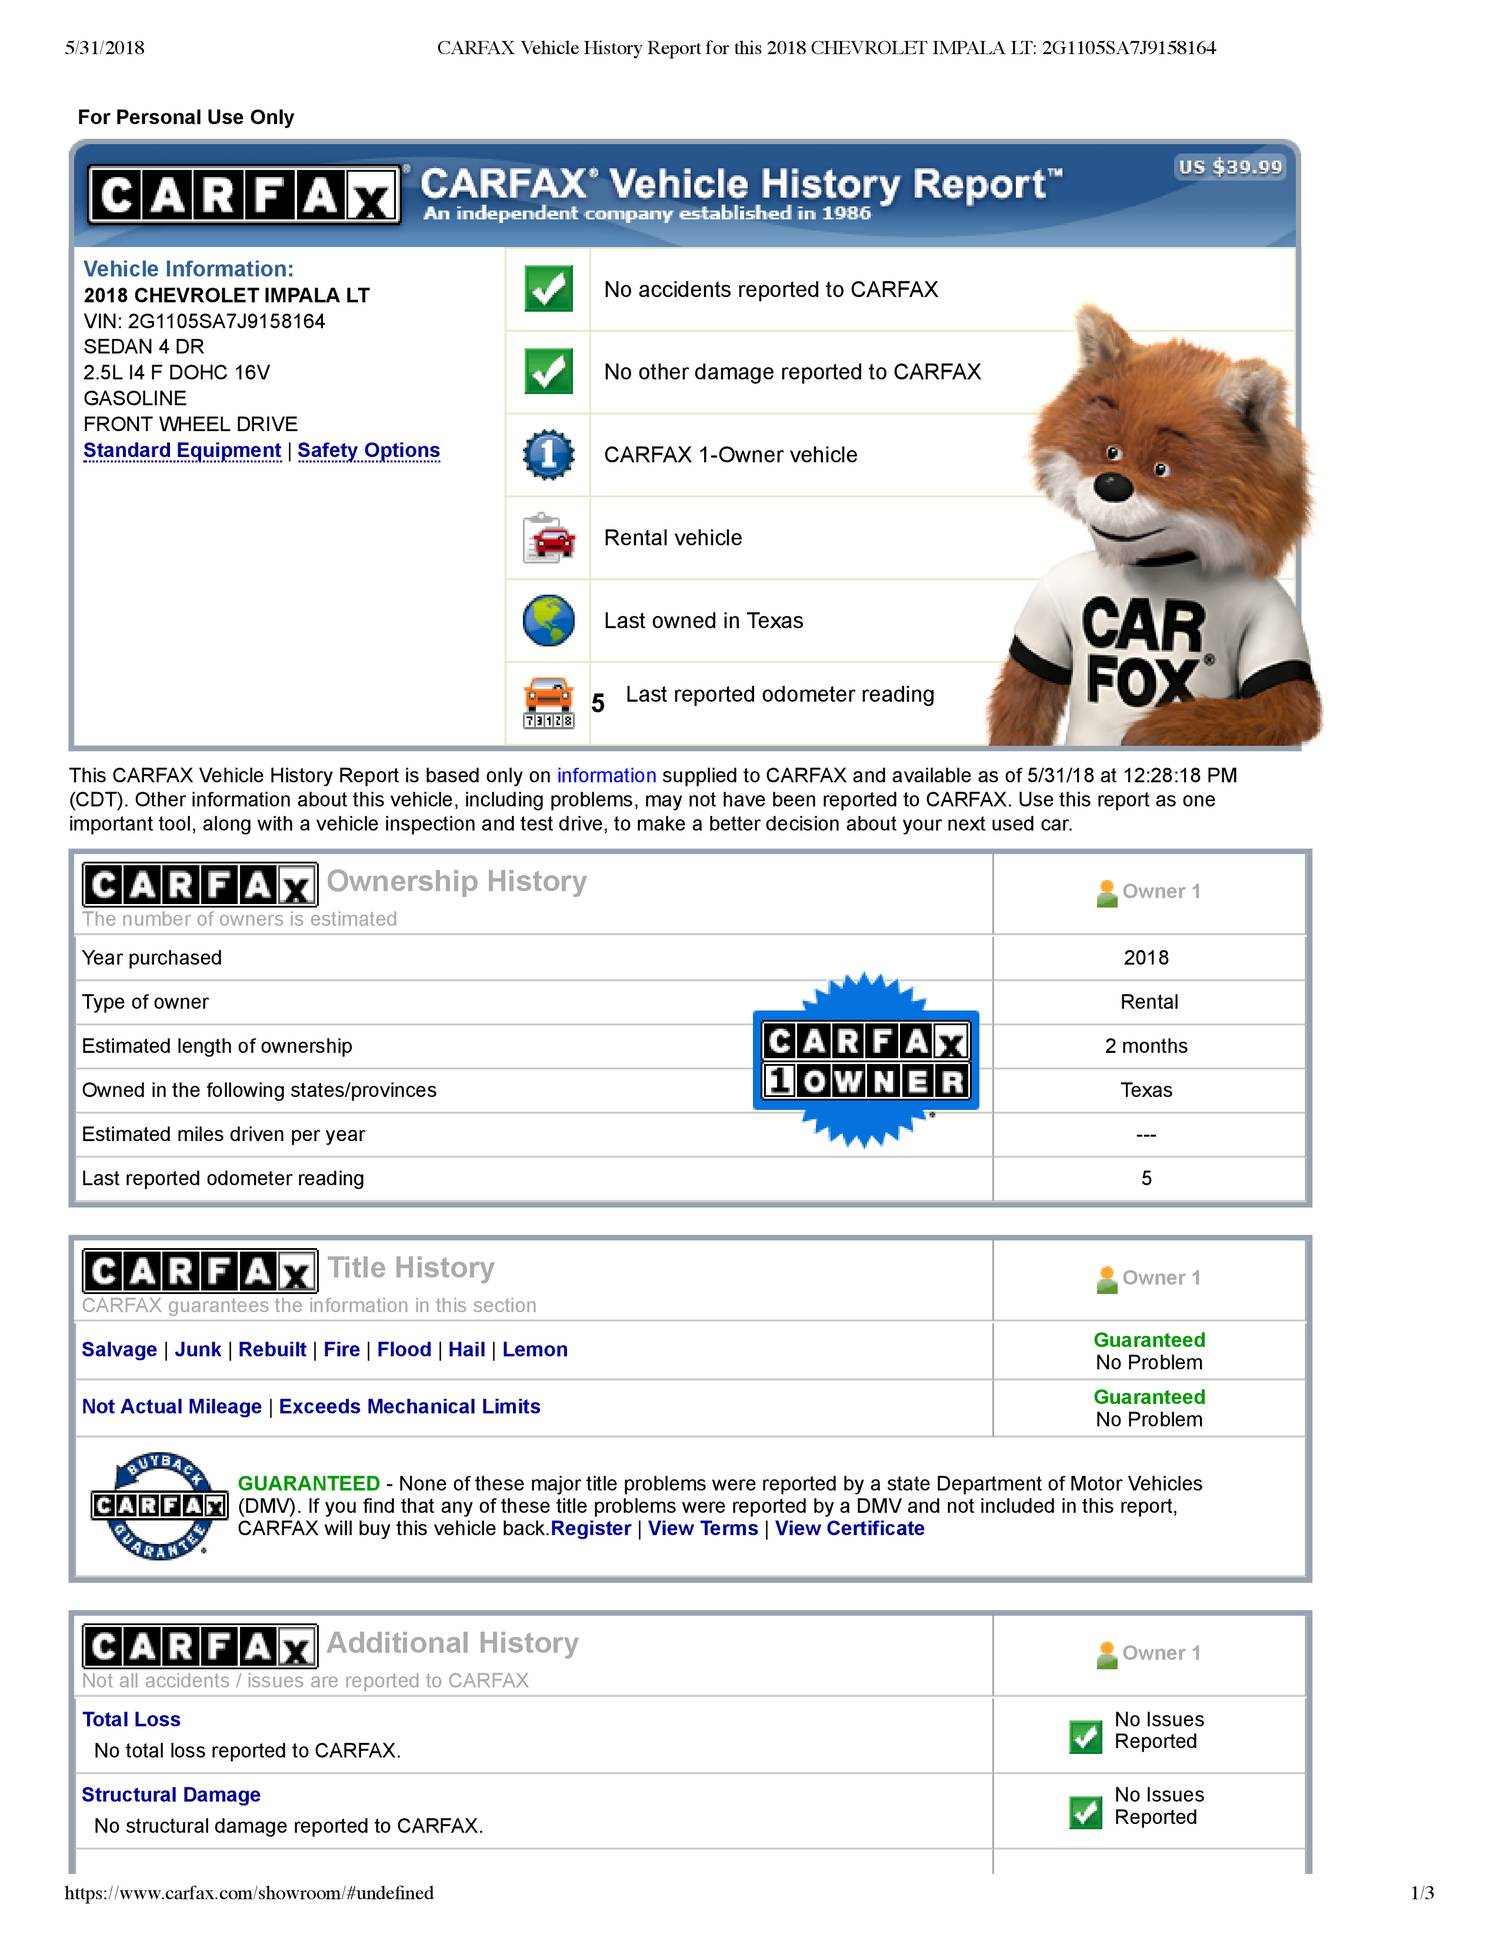 Carfax Company Unique Carfax Vehicle History Report for This 2018 Chevrolet Impala Lt